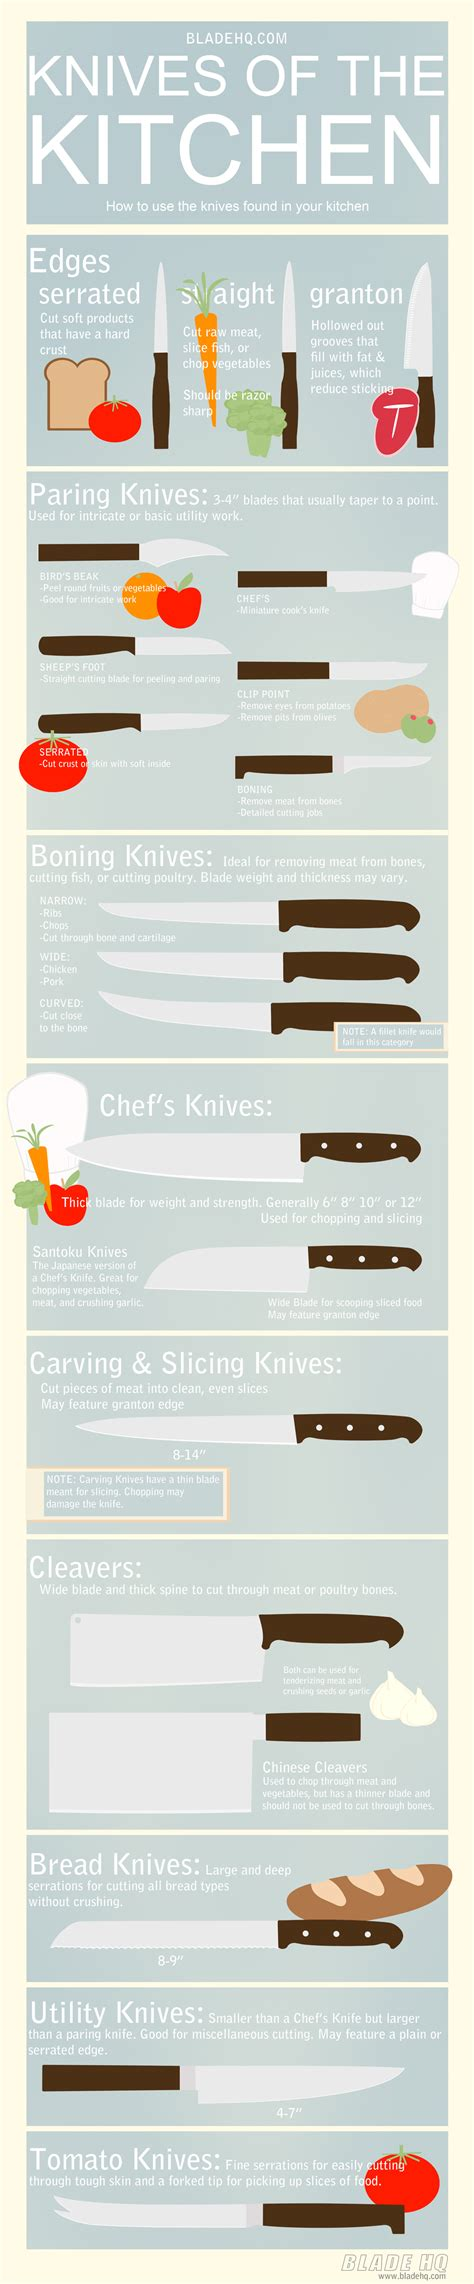 kitchen knives guide kitchenknives 4fa17f1817d19